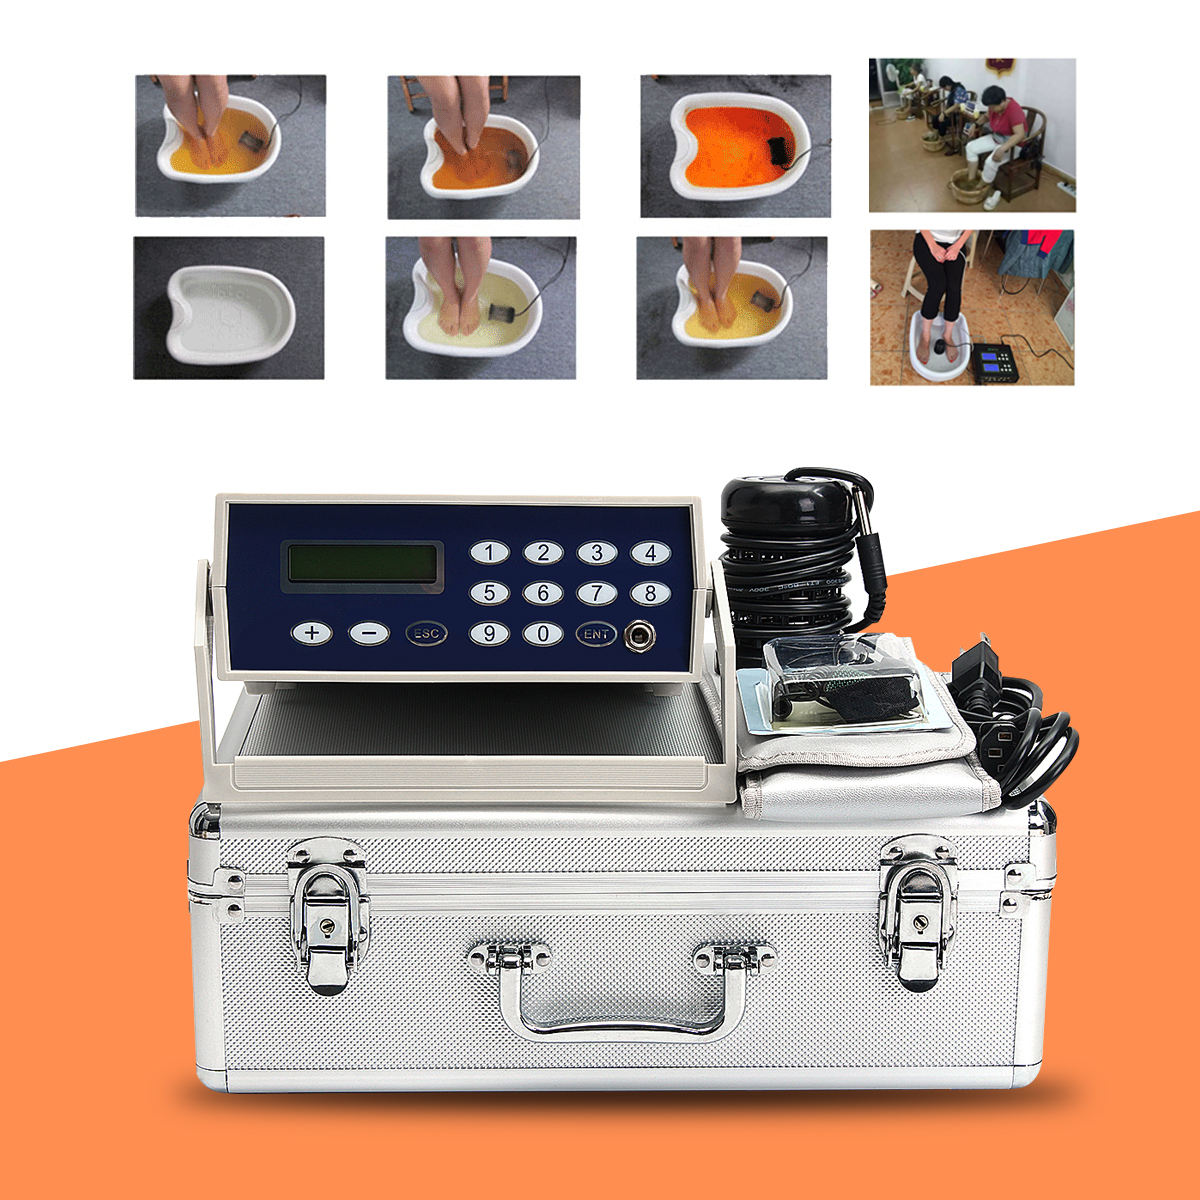 цена на Detox foot care Machine Cell Ion Ionic Aqua Foot Bath SPA Cleanse Machine Fir Belt Box CAN foot bath massage pain relief machine